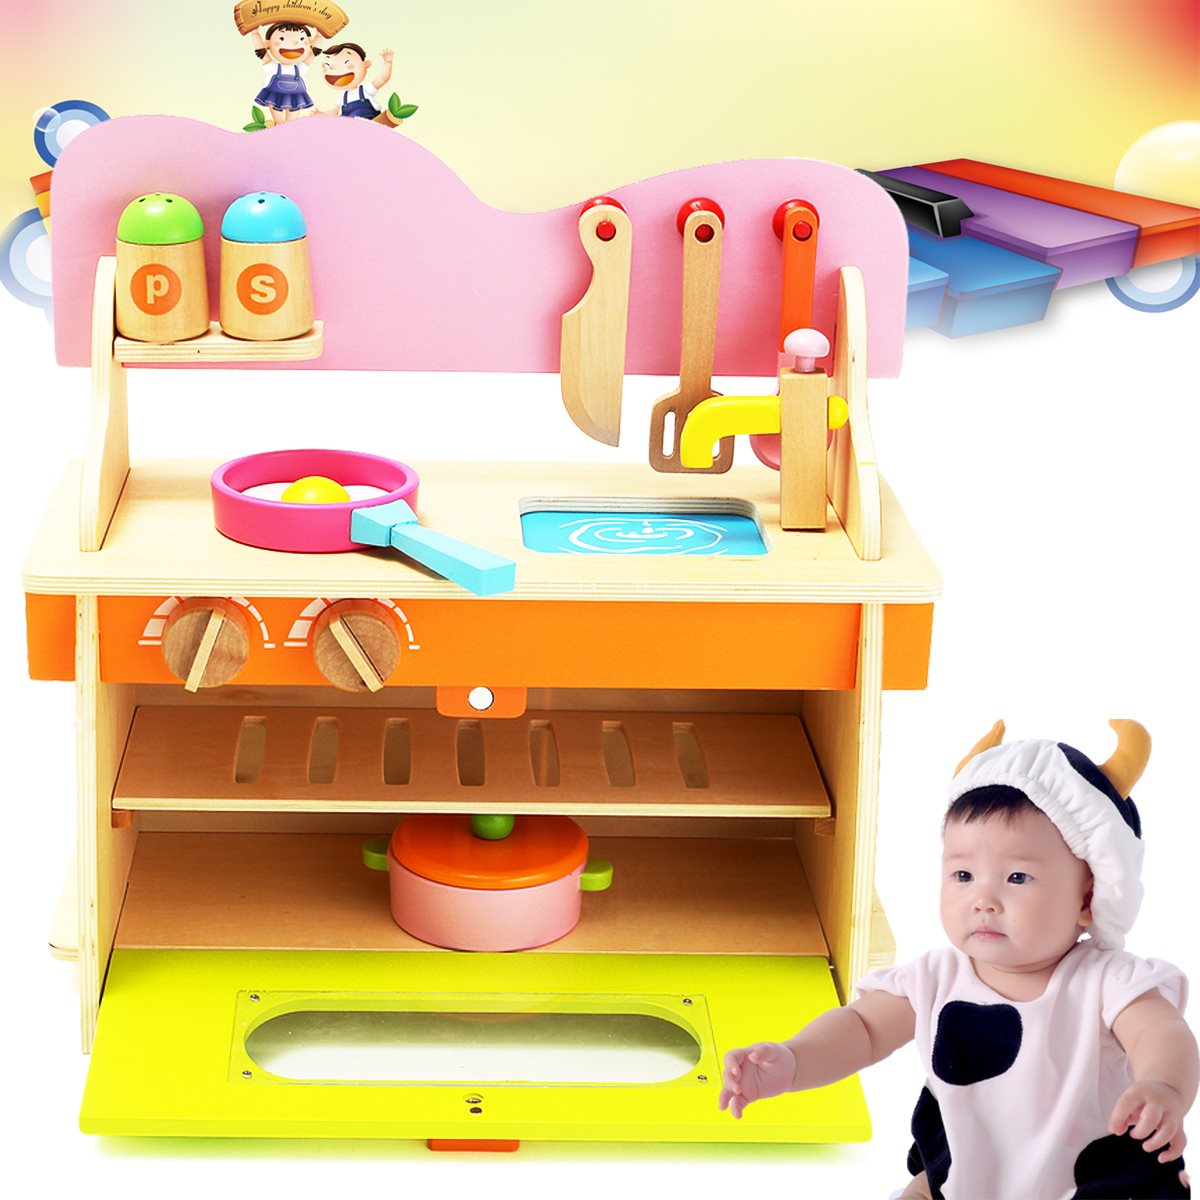 New Arrival 36*17*36cm Colorful Kitchen Wooden Wood Pretend Gas Stove Toy Model Set For Kids Gifts Home new colorful wooden vegetables combination kitchen toys for pretend play wood building blocks children educational kids toy gift